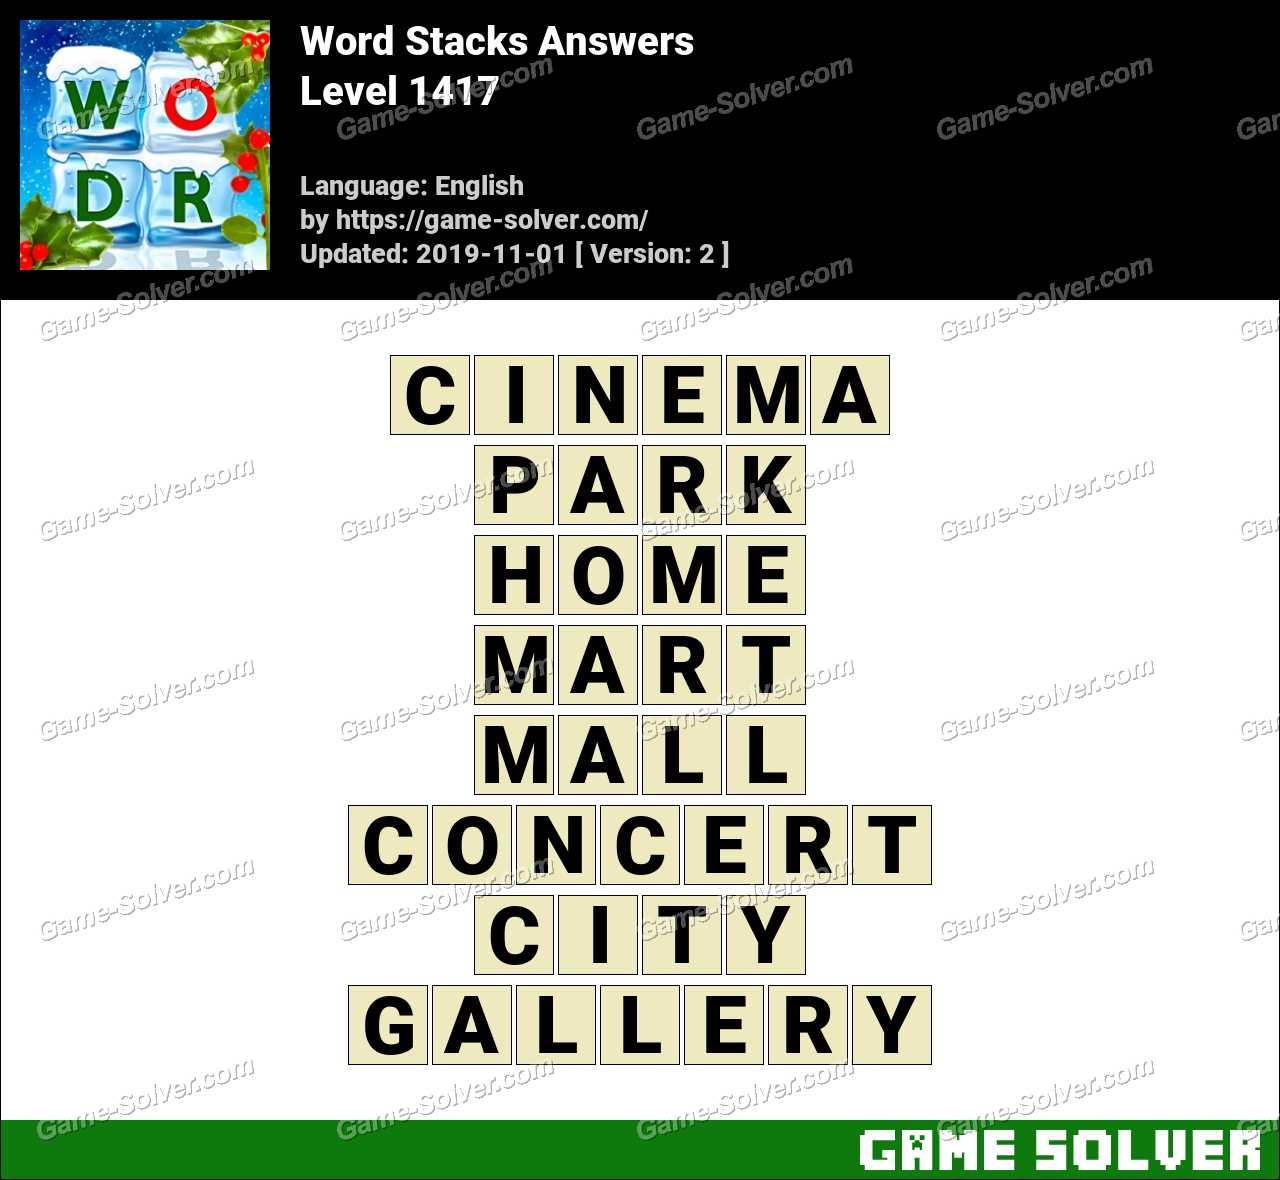 Word Stacks Level 1417 Answers